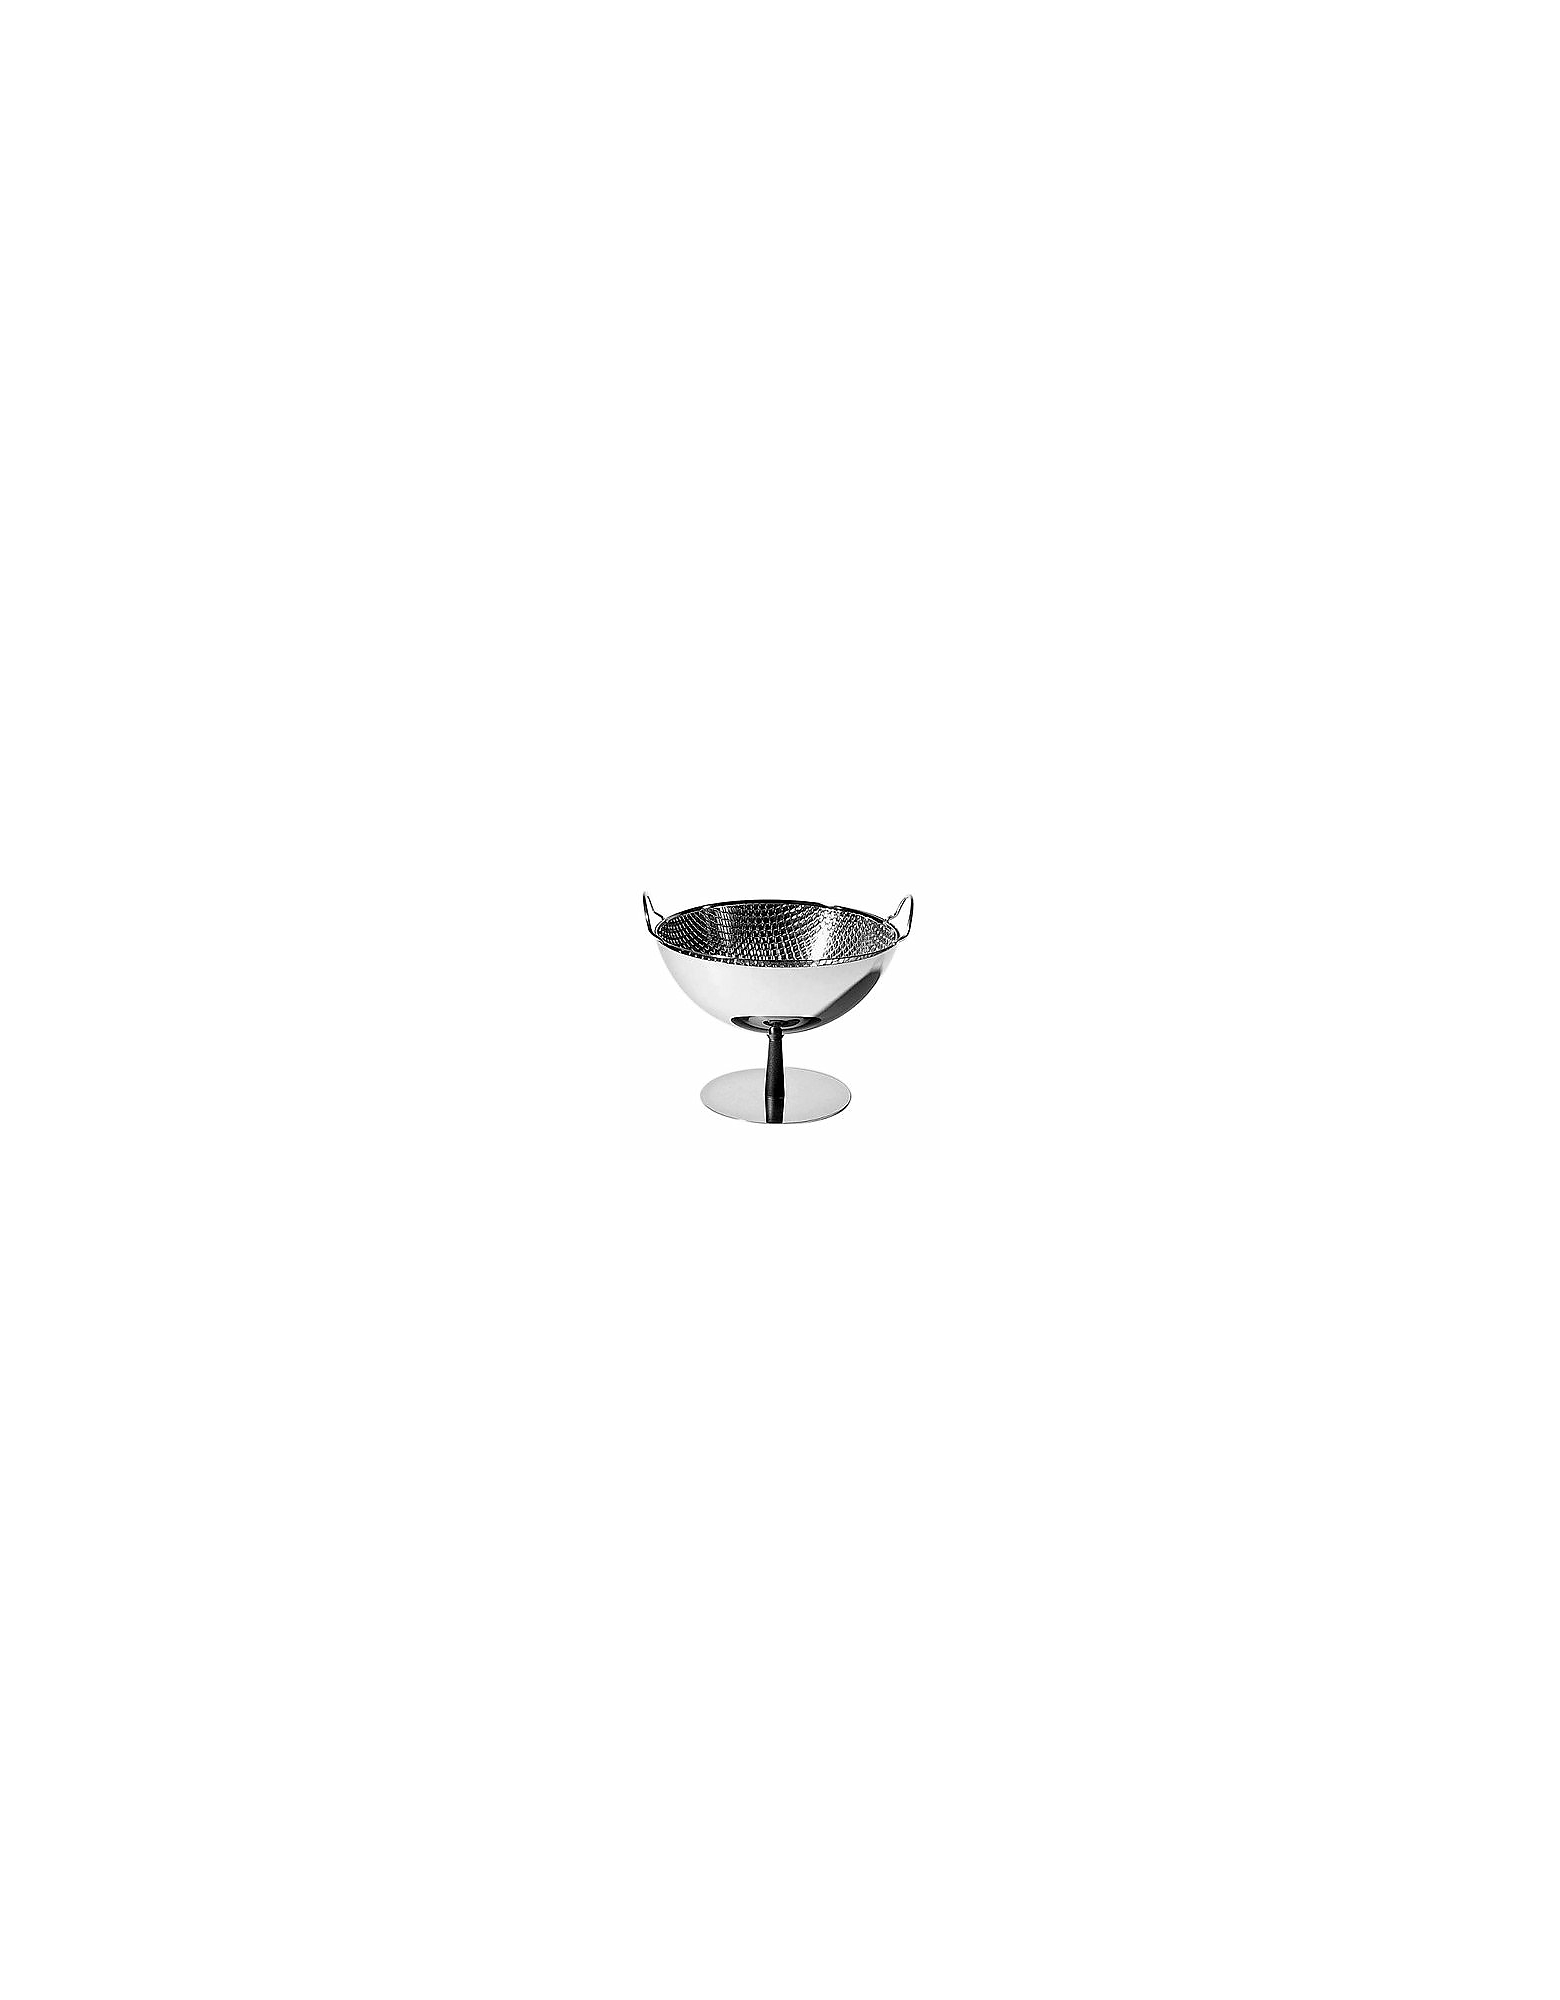 Alessi Kitchen & Dining, Fruit Bowl/Colander With Aluminium Base